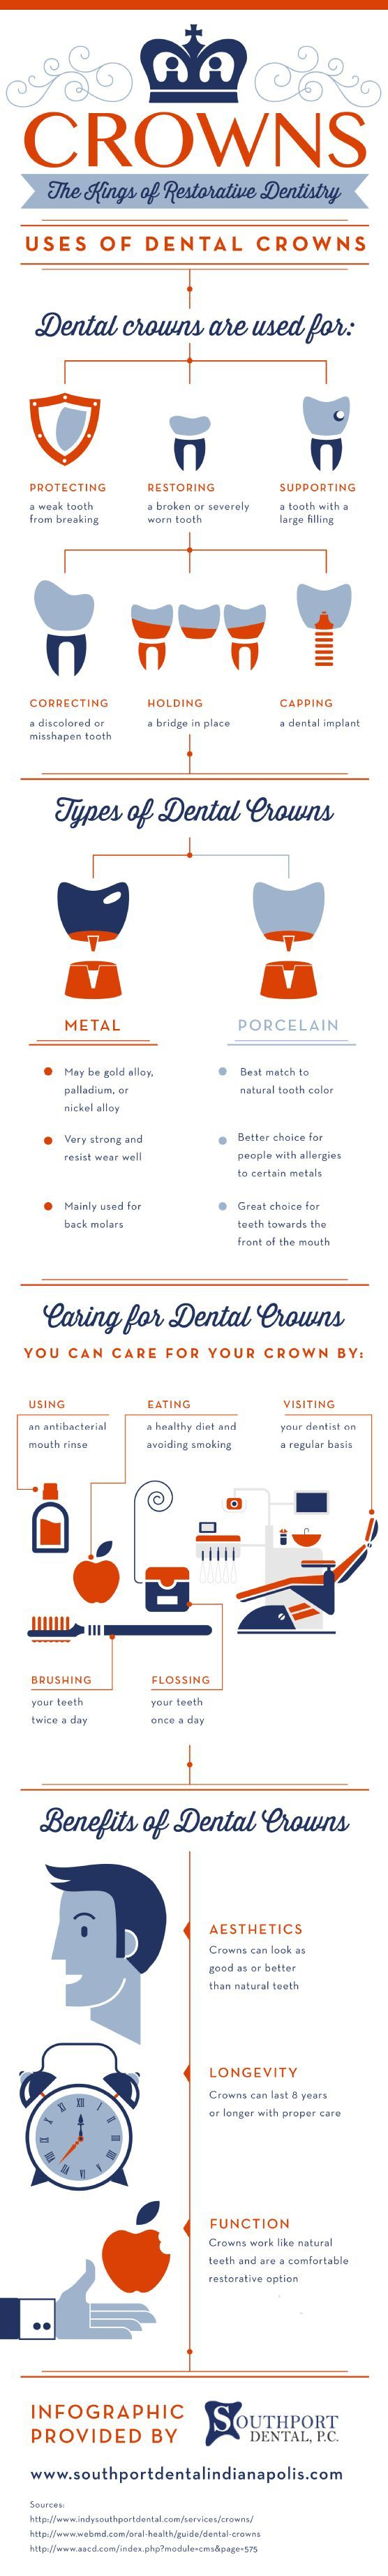 Crowns: The Kings Of Restorative Dentistry #FrandsendDental